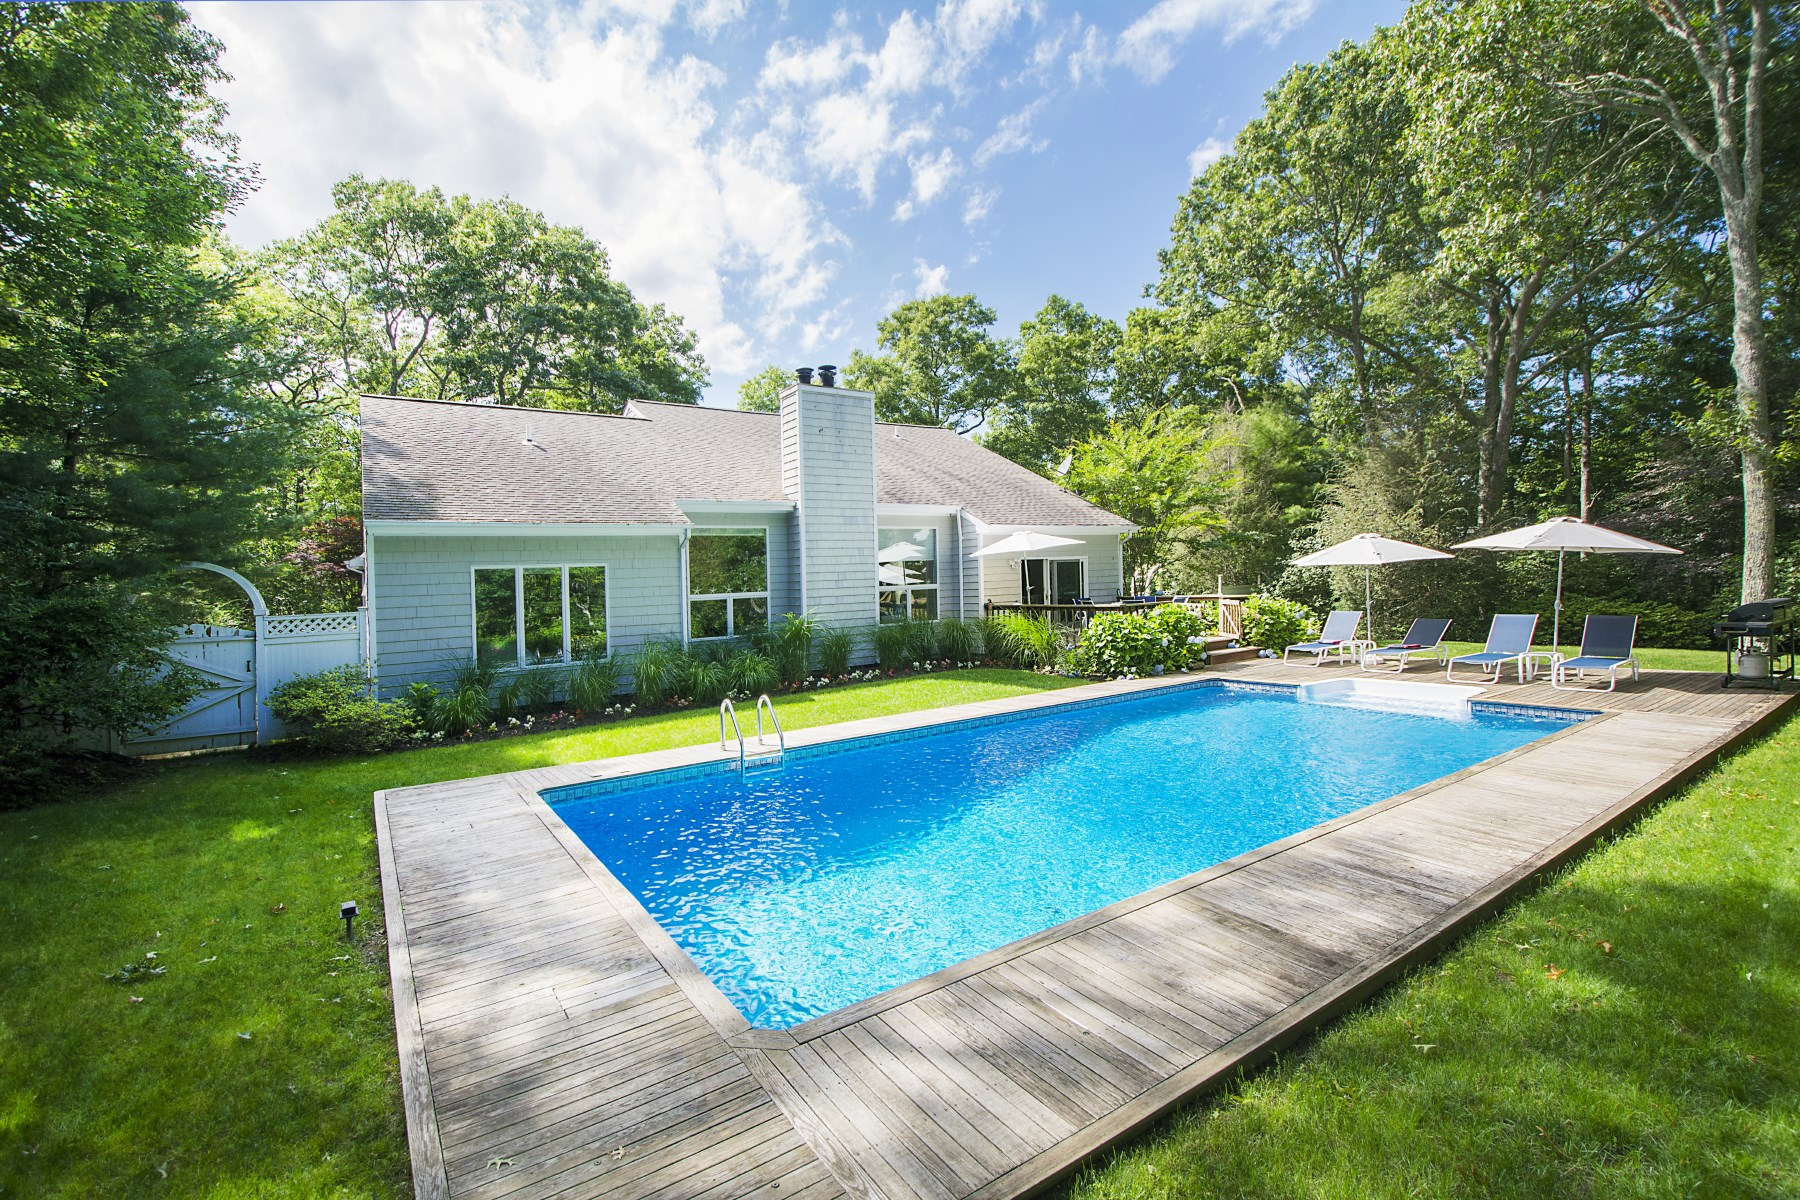 Casa para uma família para Venda às First Rate Home with Pool in Northside 114 Northside Drive Sag Harbor, Nova York, 11963 Estados Unidos